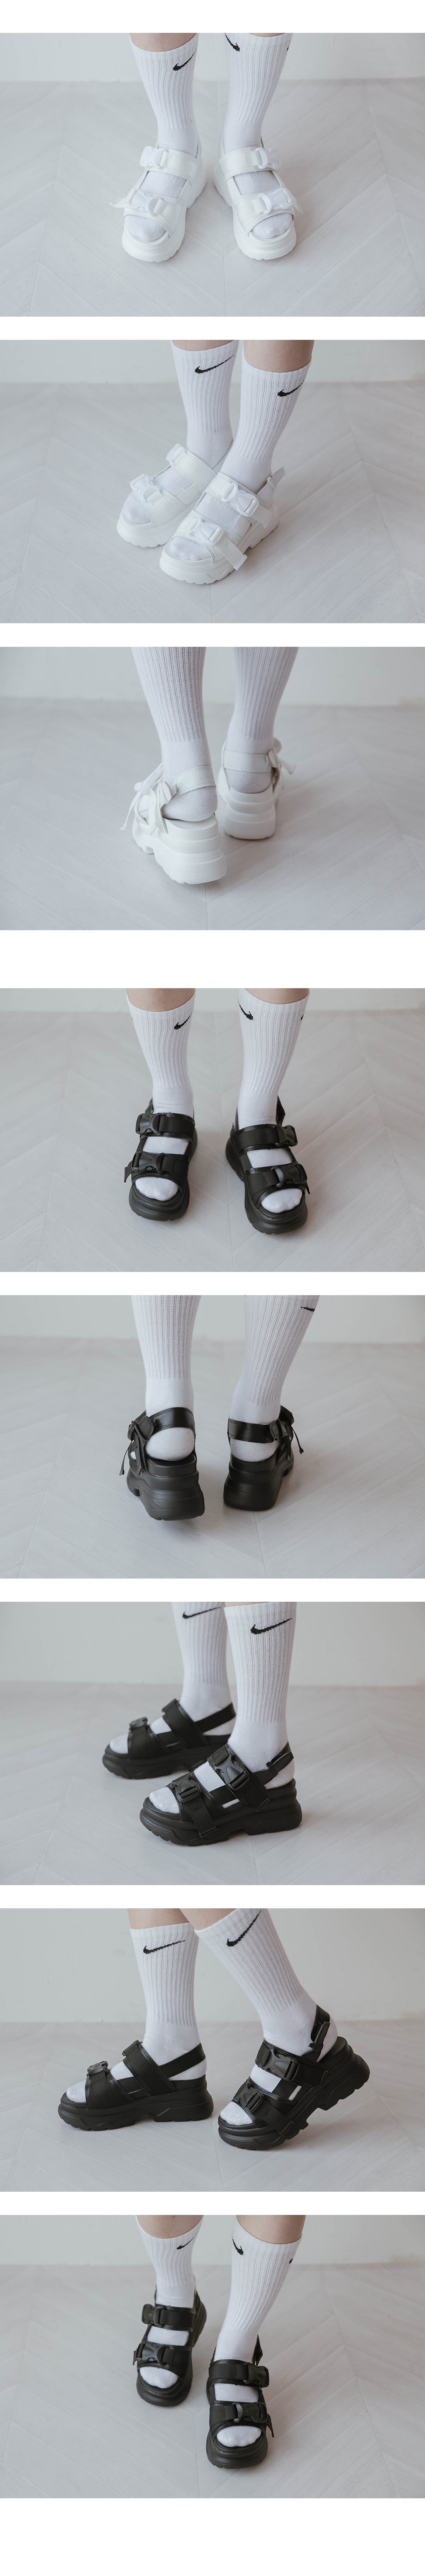 Two-buckle sandals